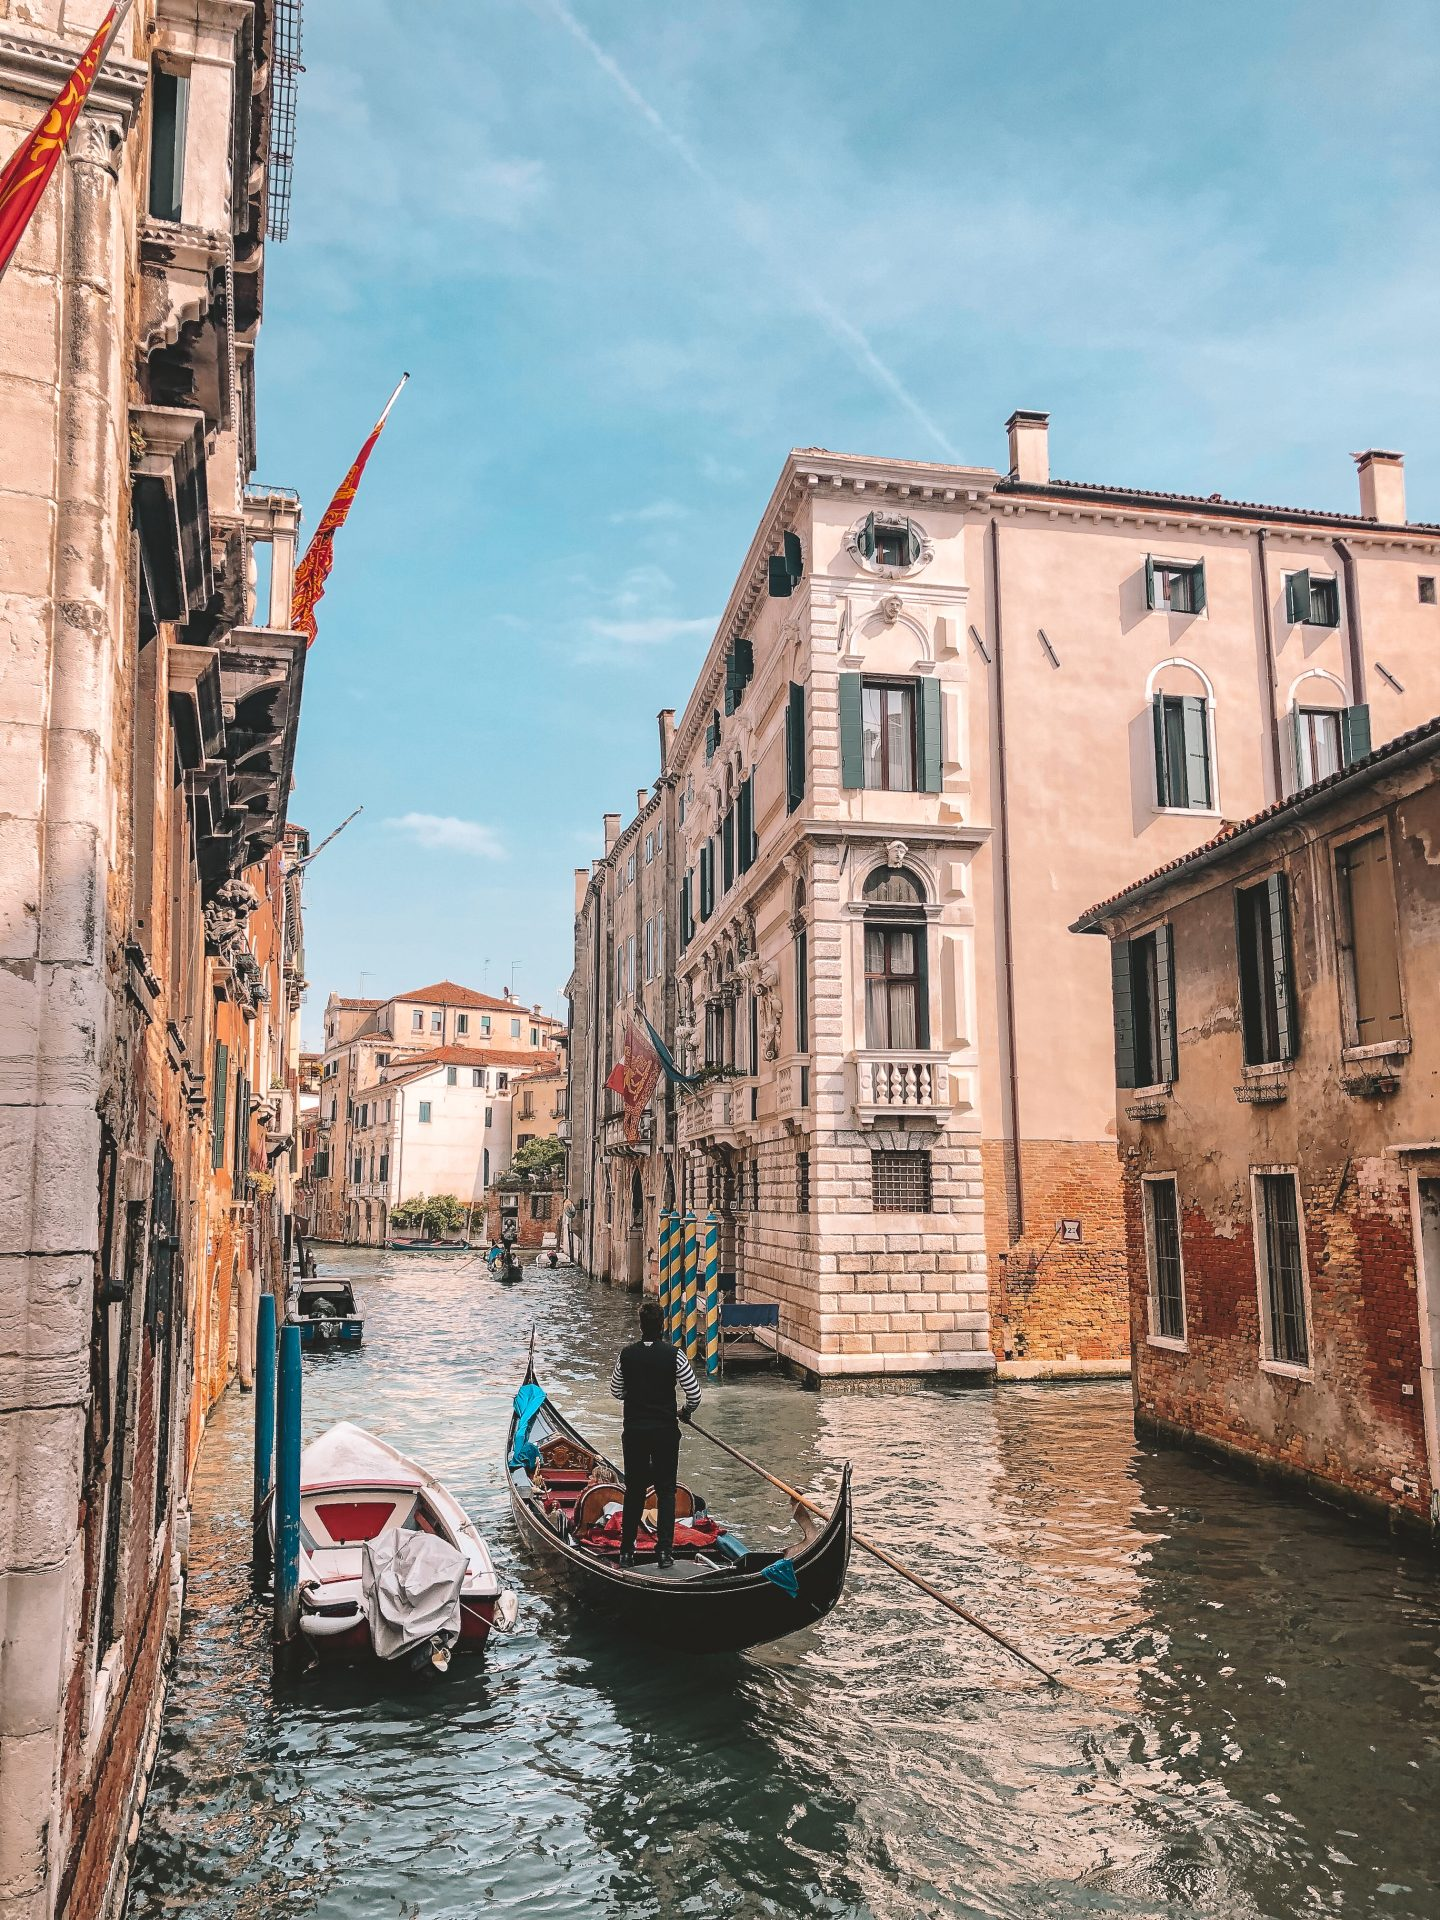 A gondola in a waterway in Venice, Italy